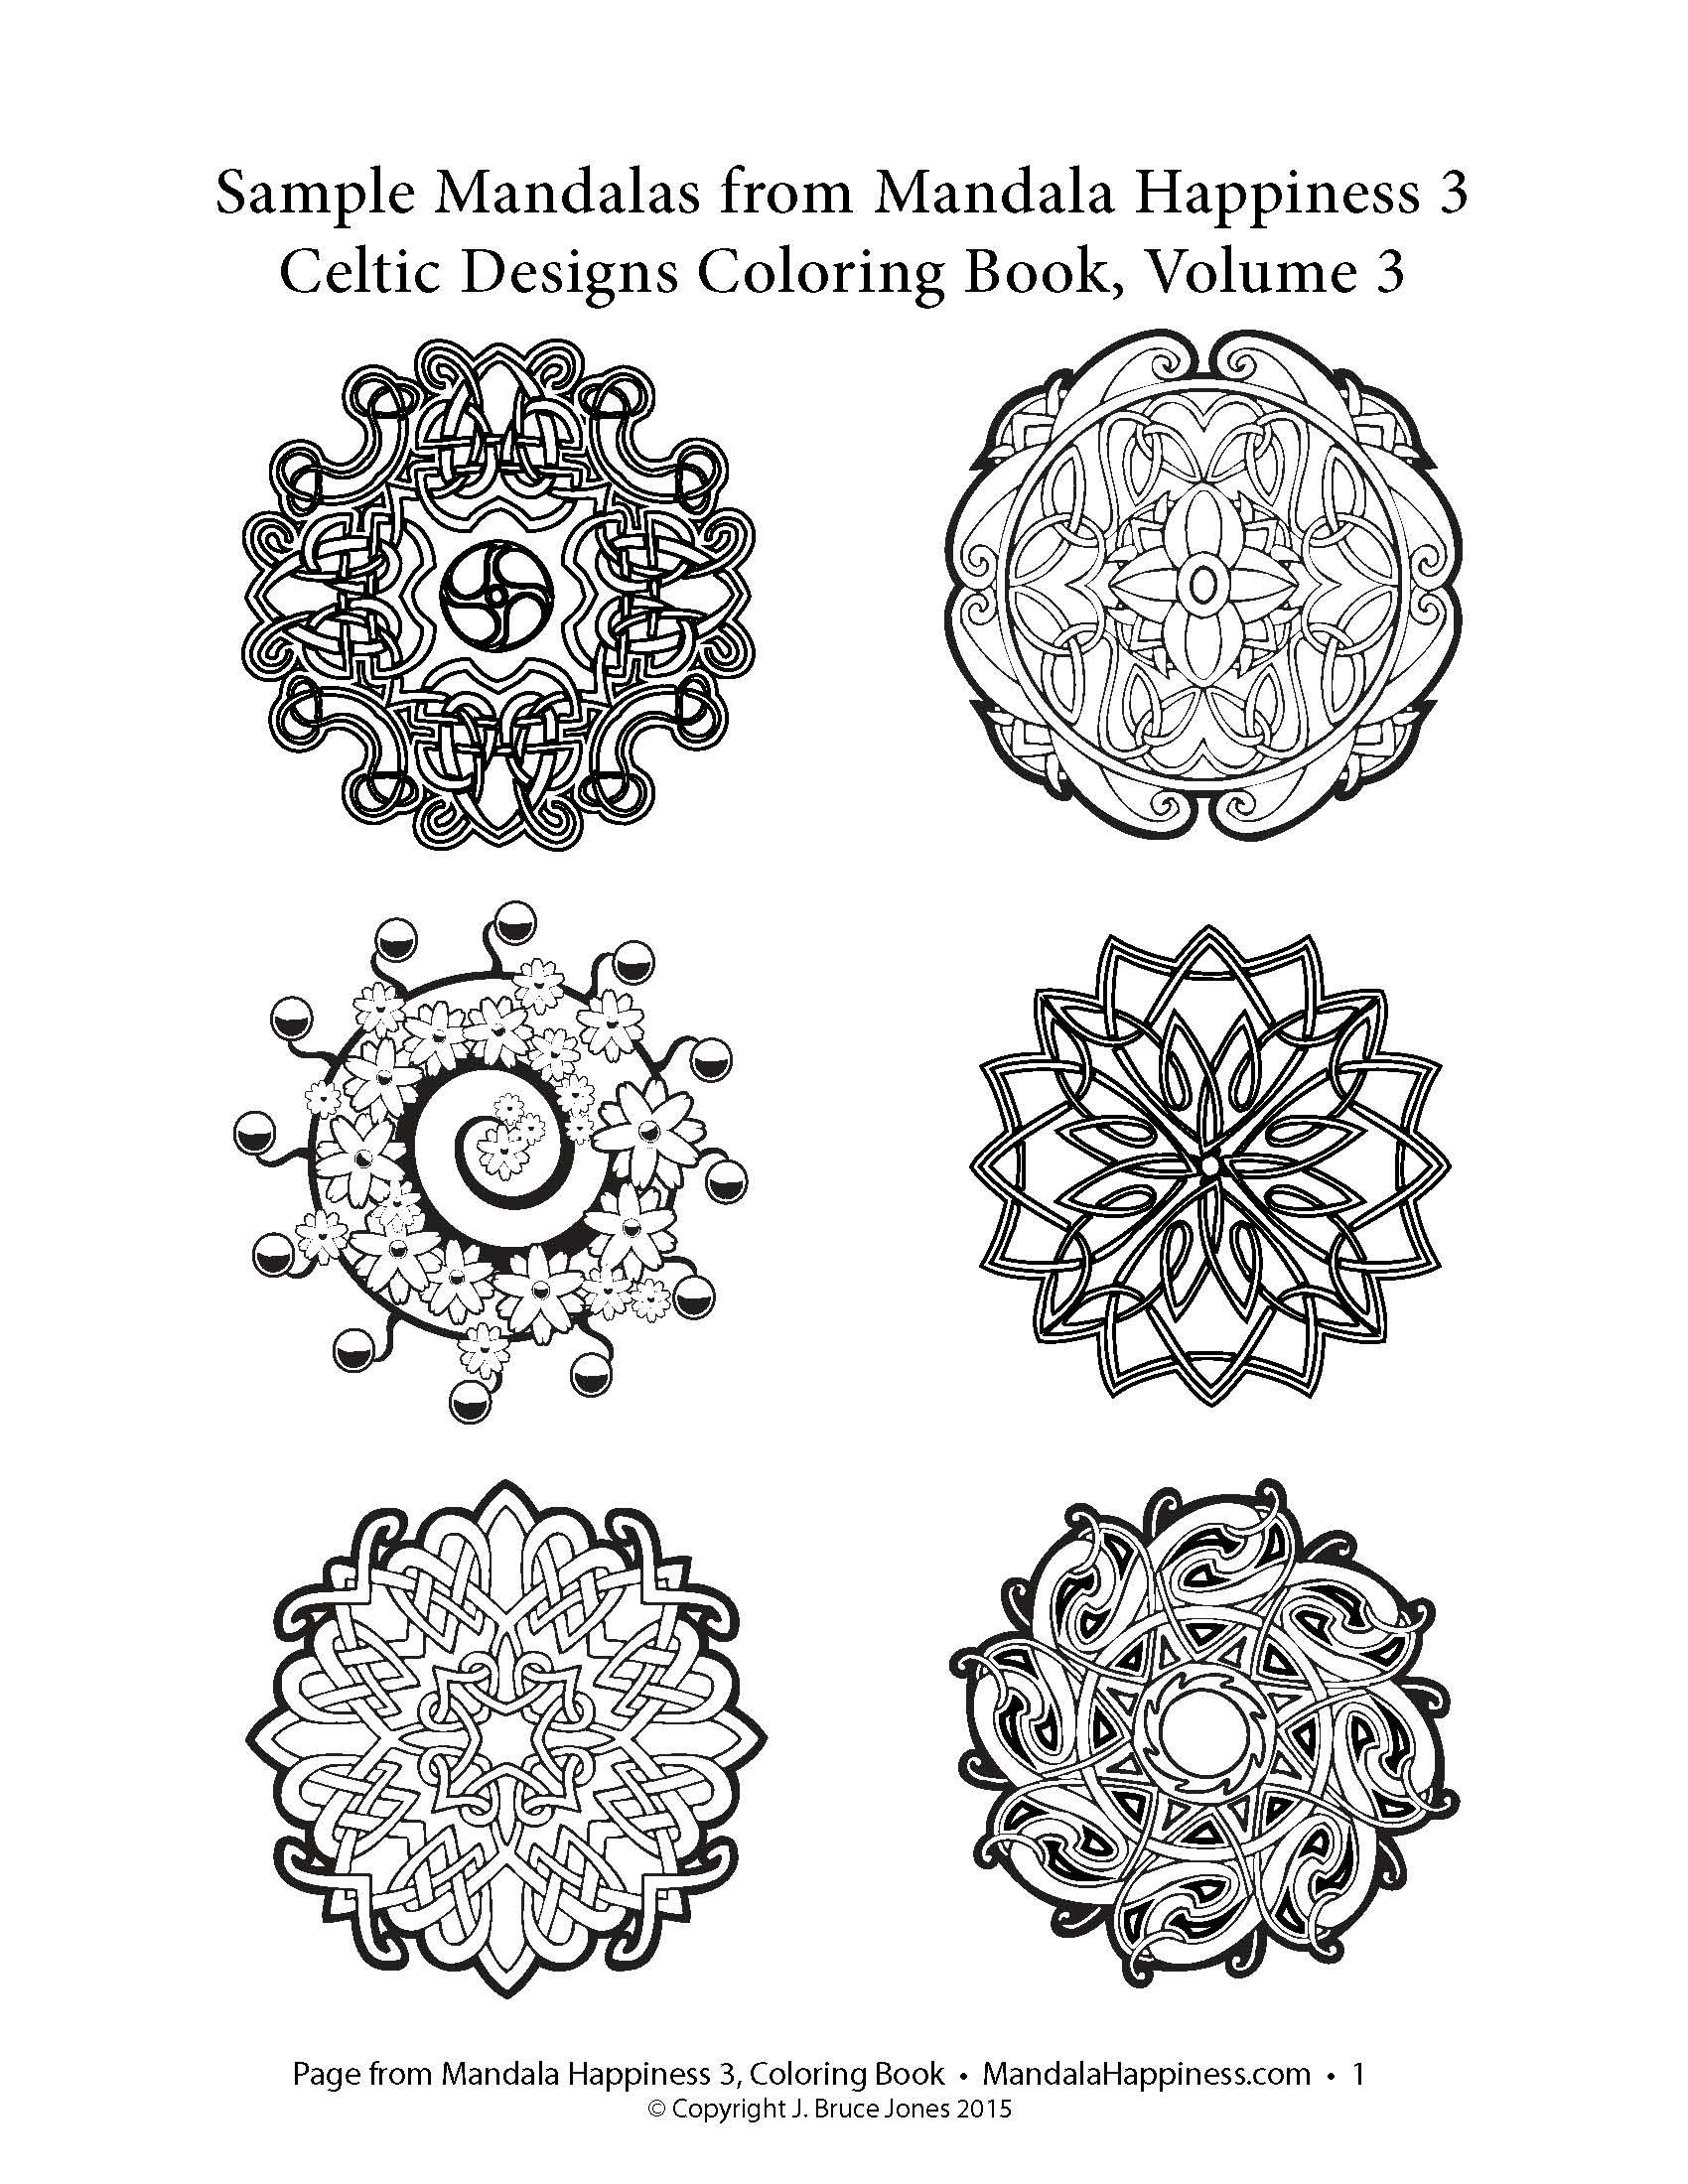 Mandala coloring pages amazon - Sample Mandala Designs From Mandala Happiness 3 Celtic Designs New Book On Amazon